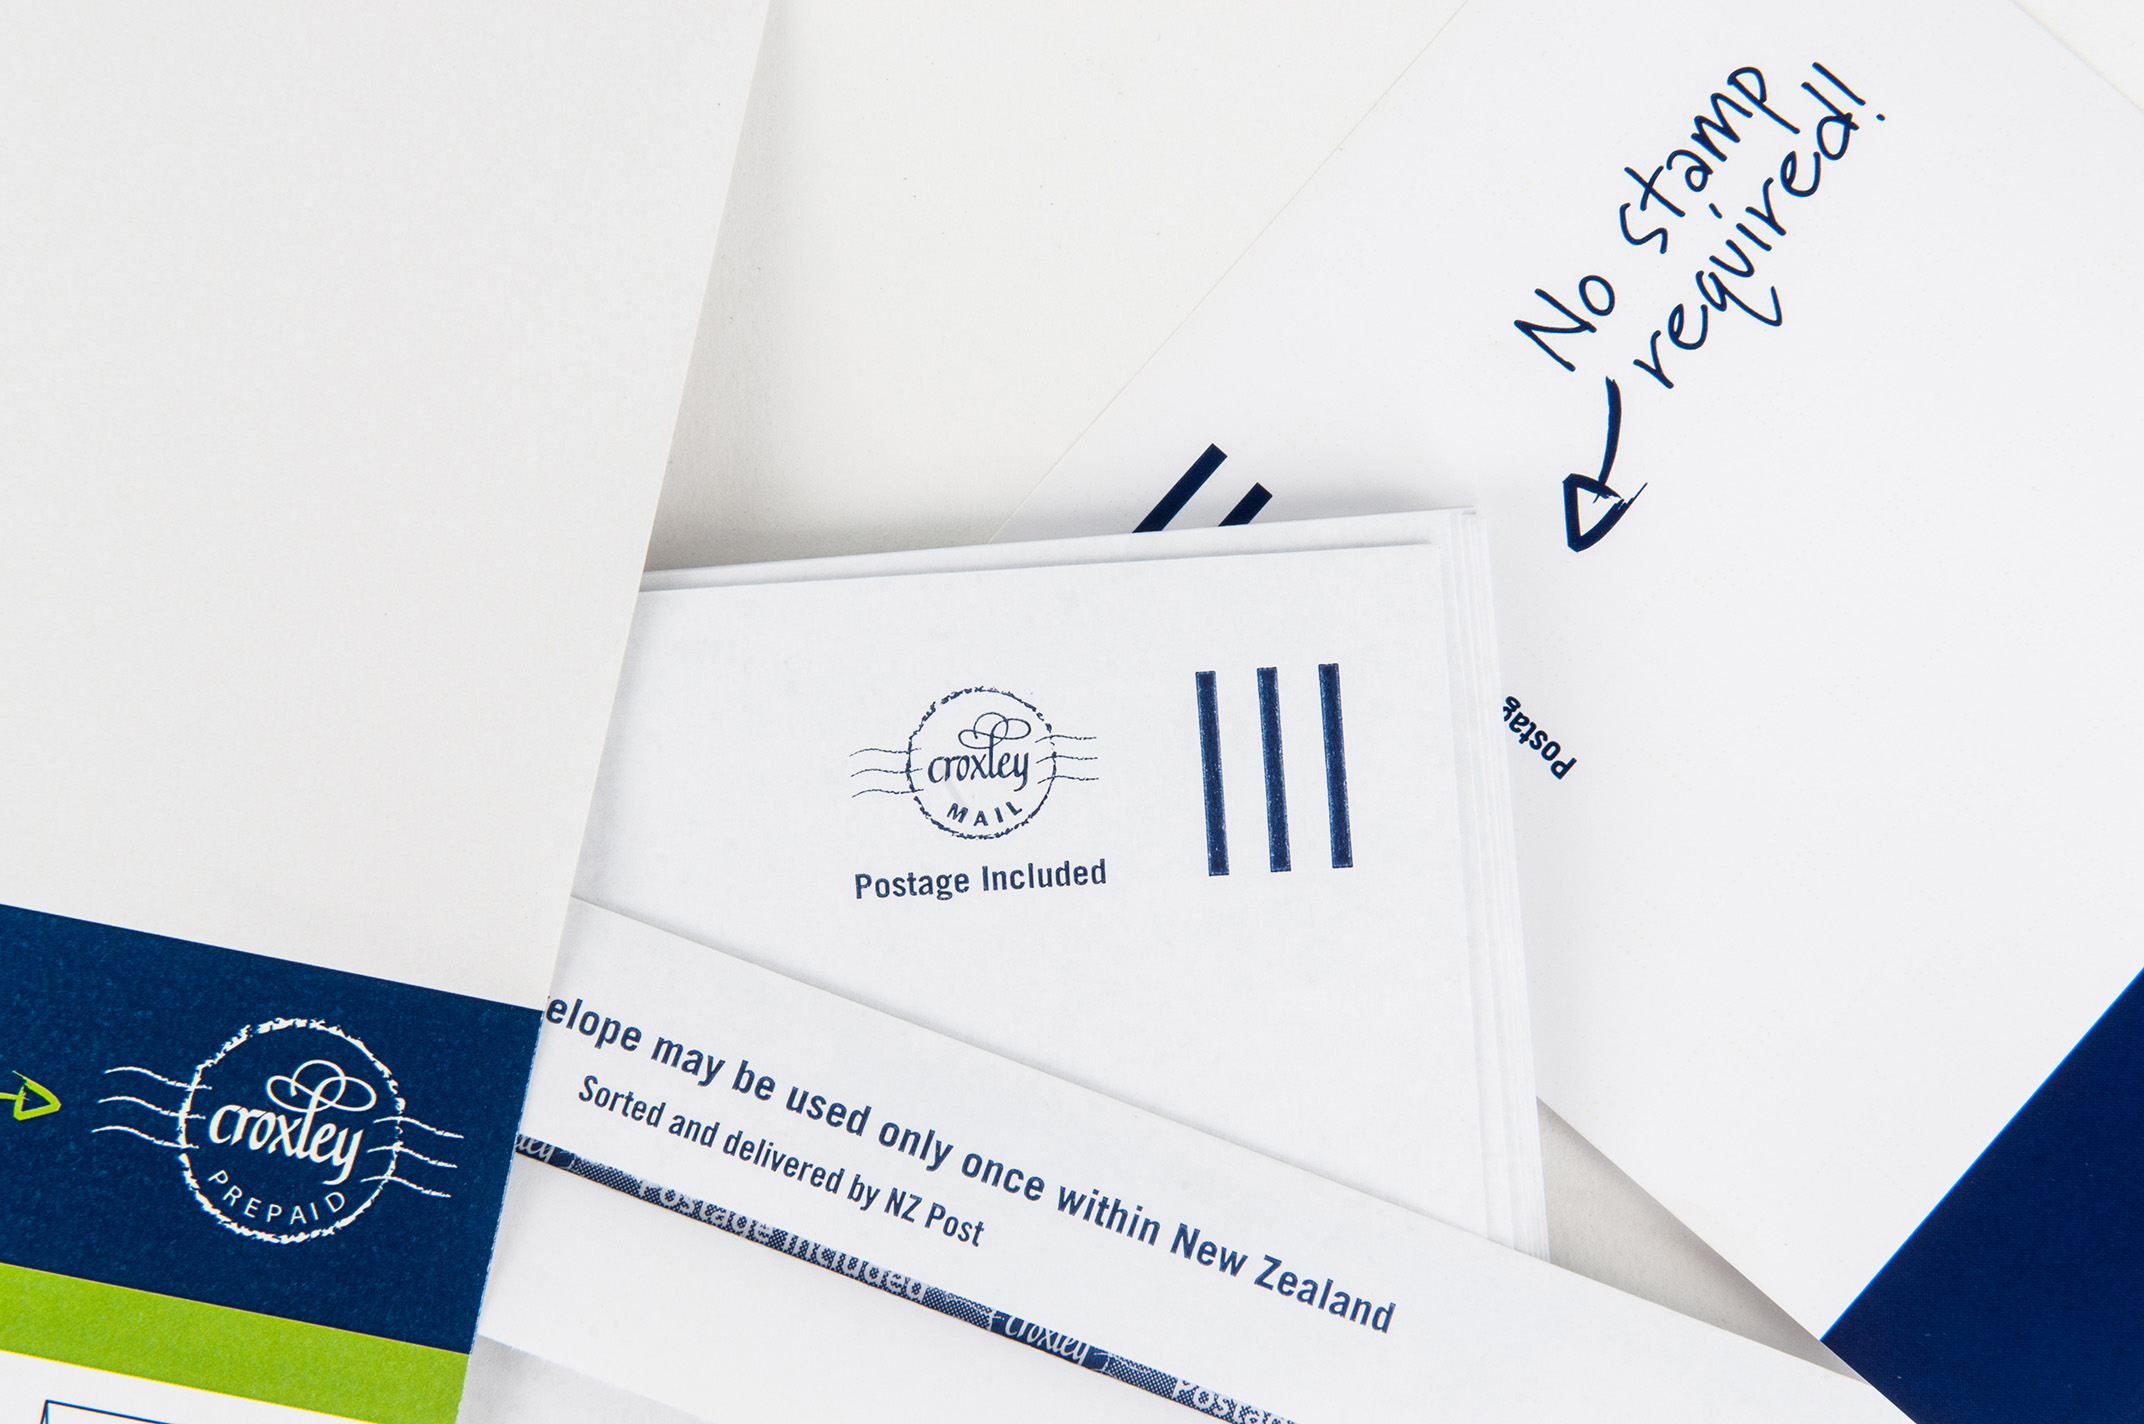 Croxley enveloppes product photography auckland